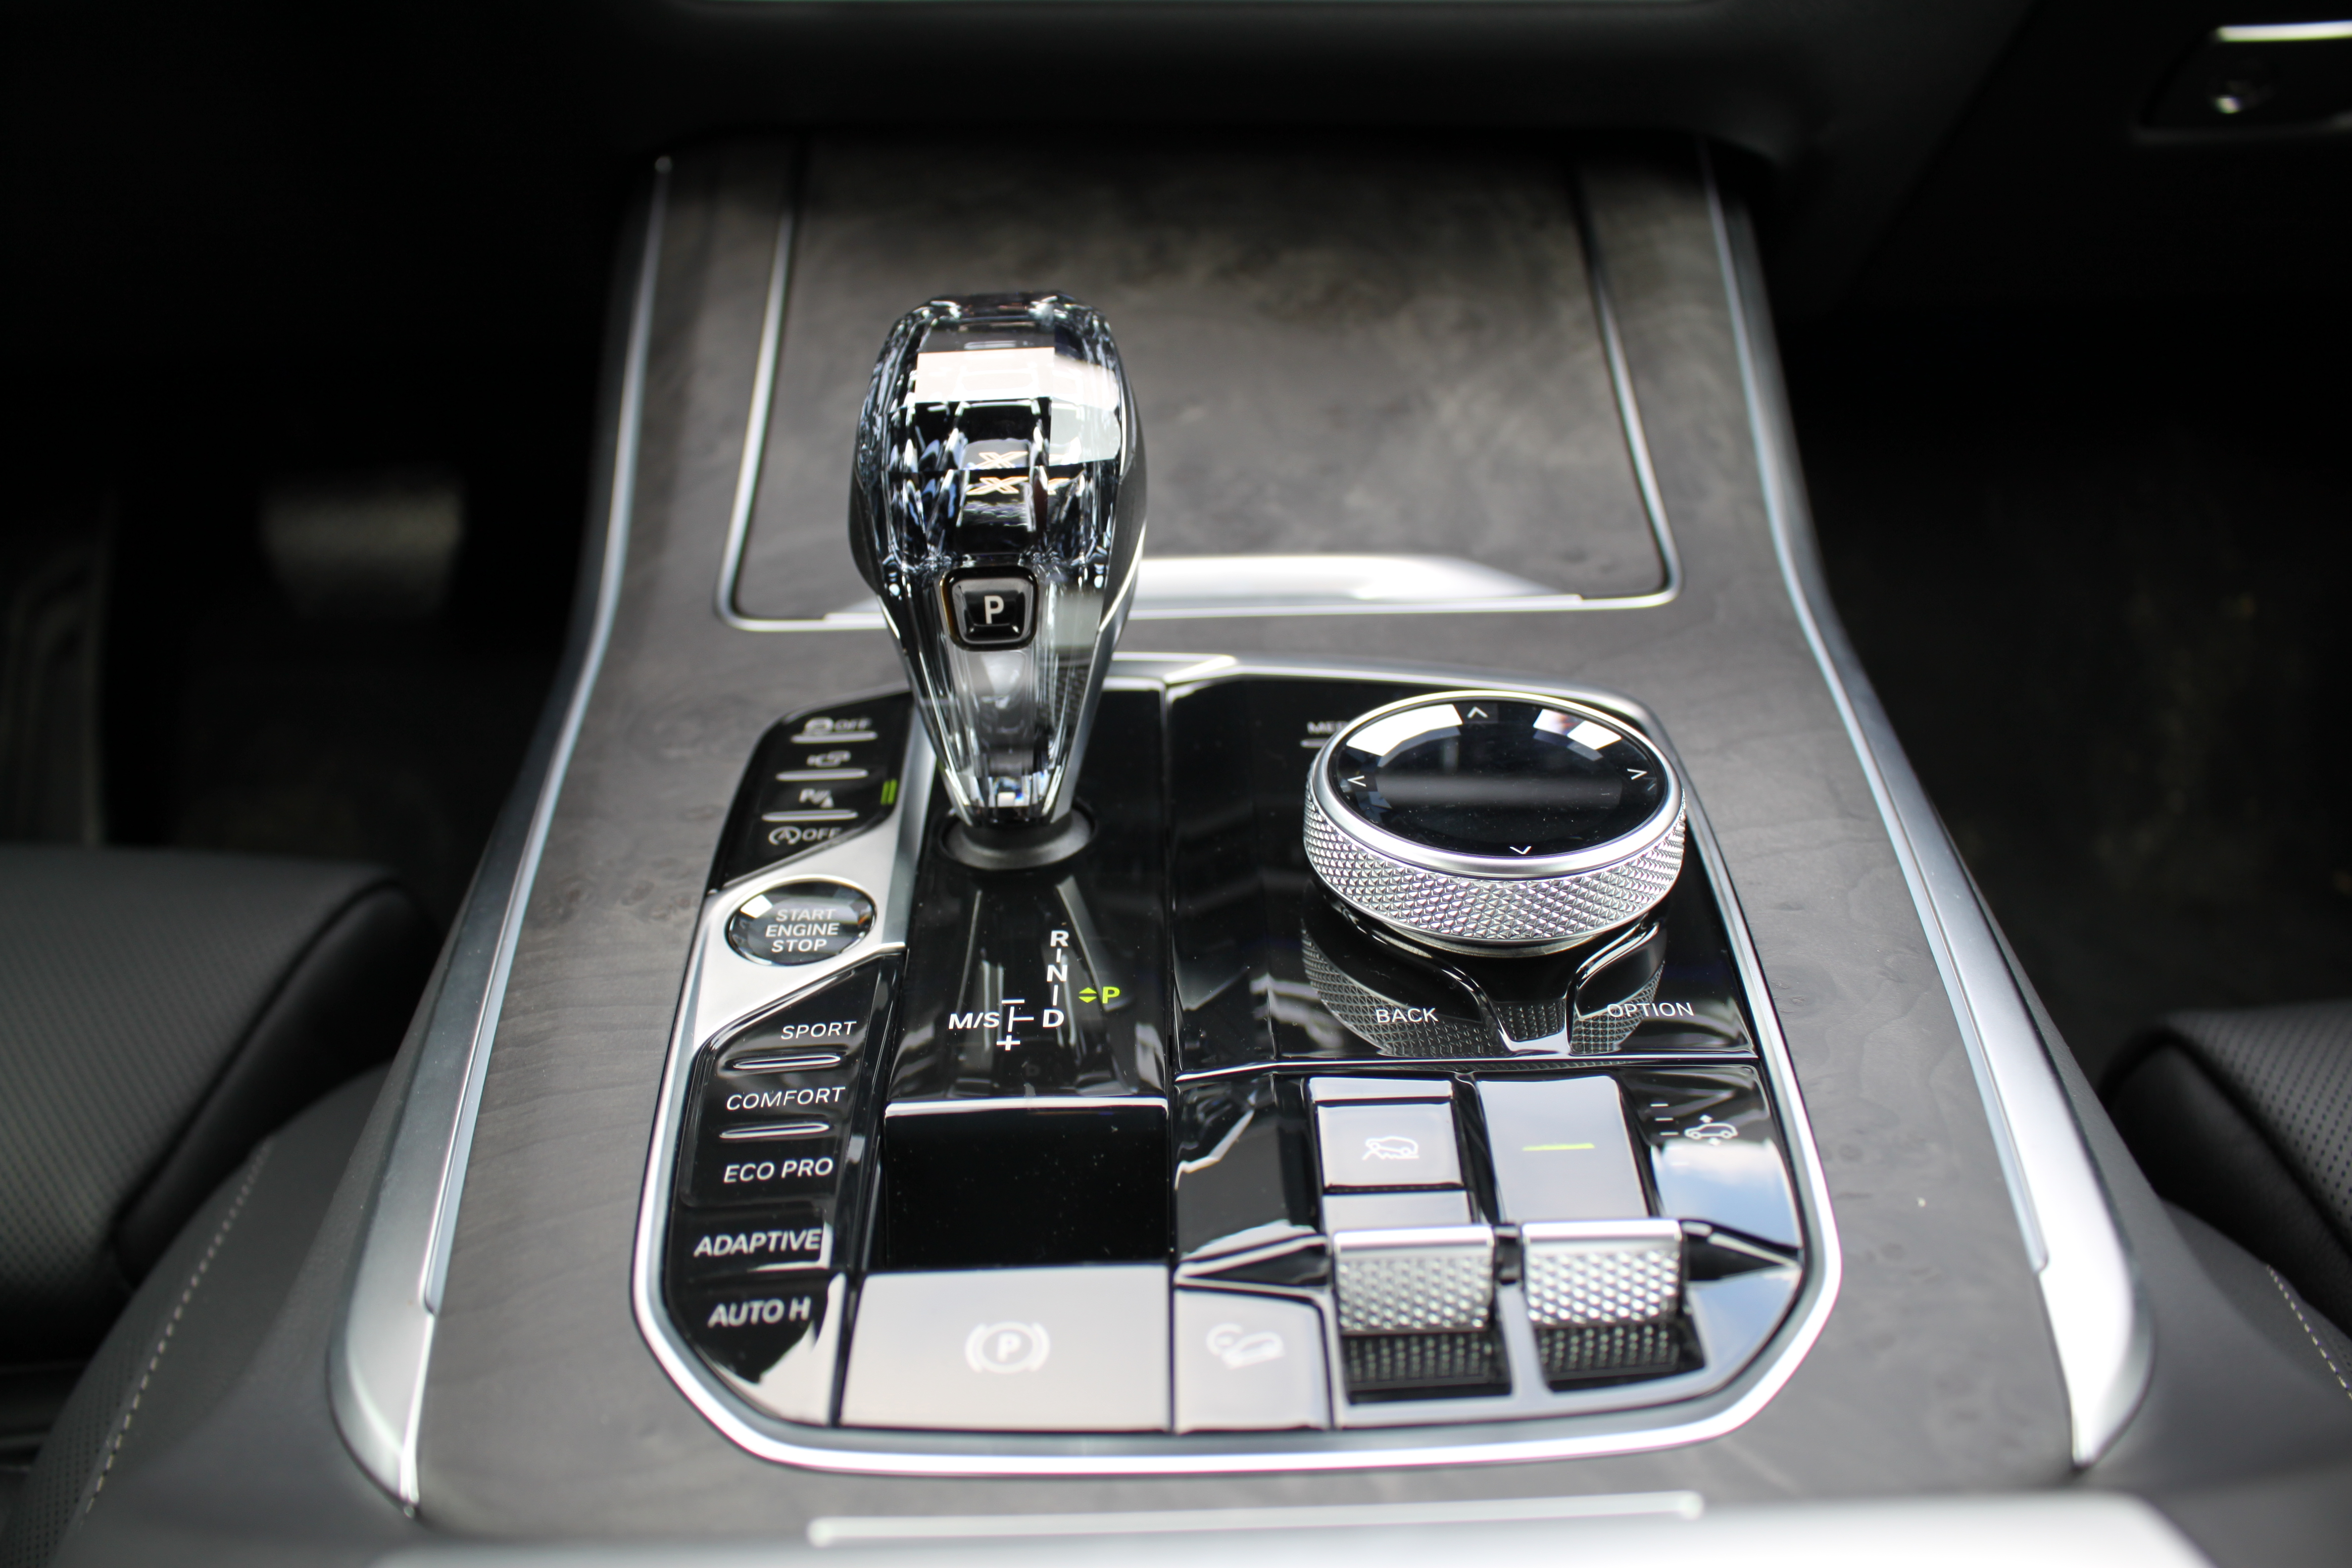 2019 Bmw X5 Rear Entertainment System Bmw Cars Review